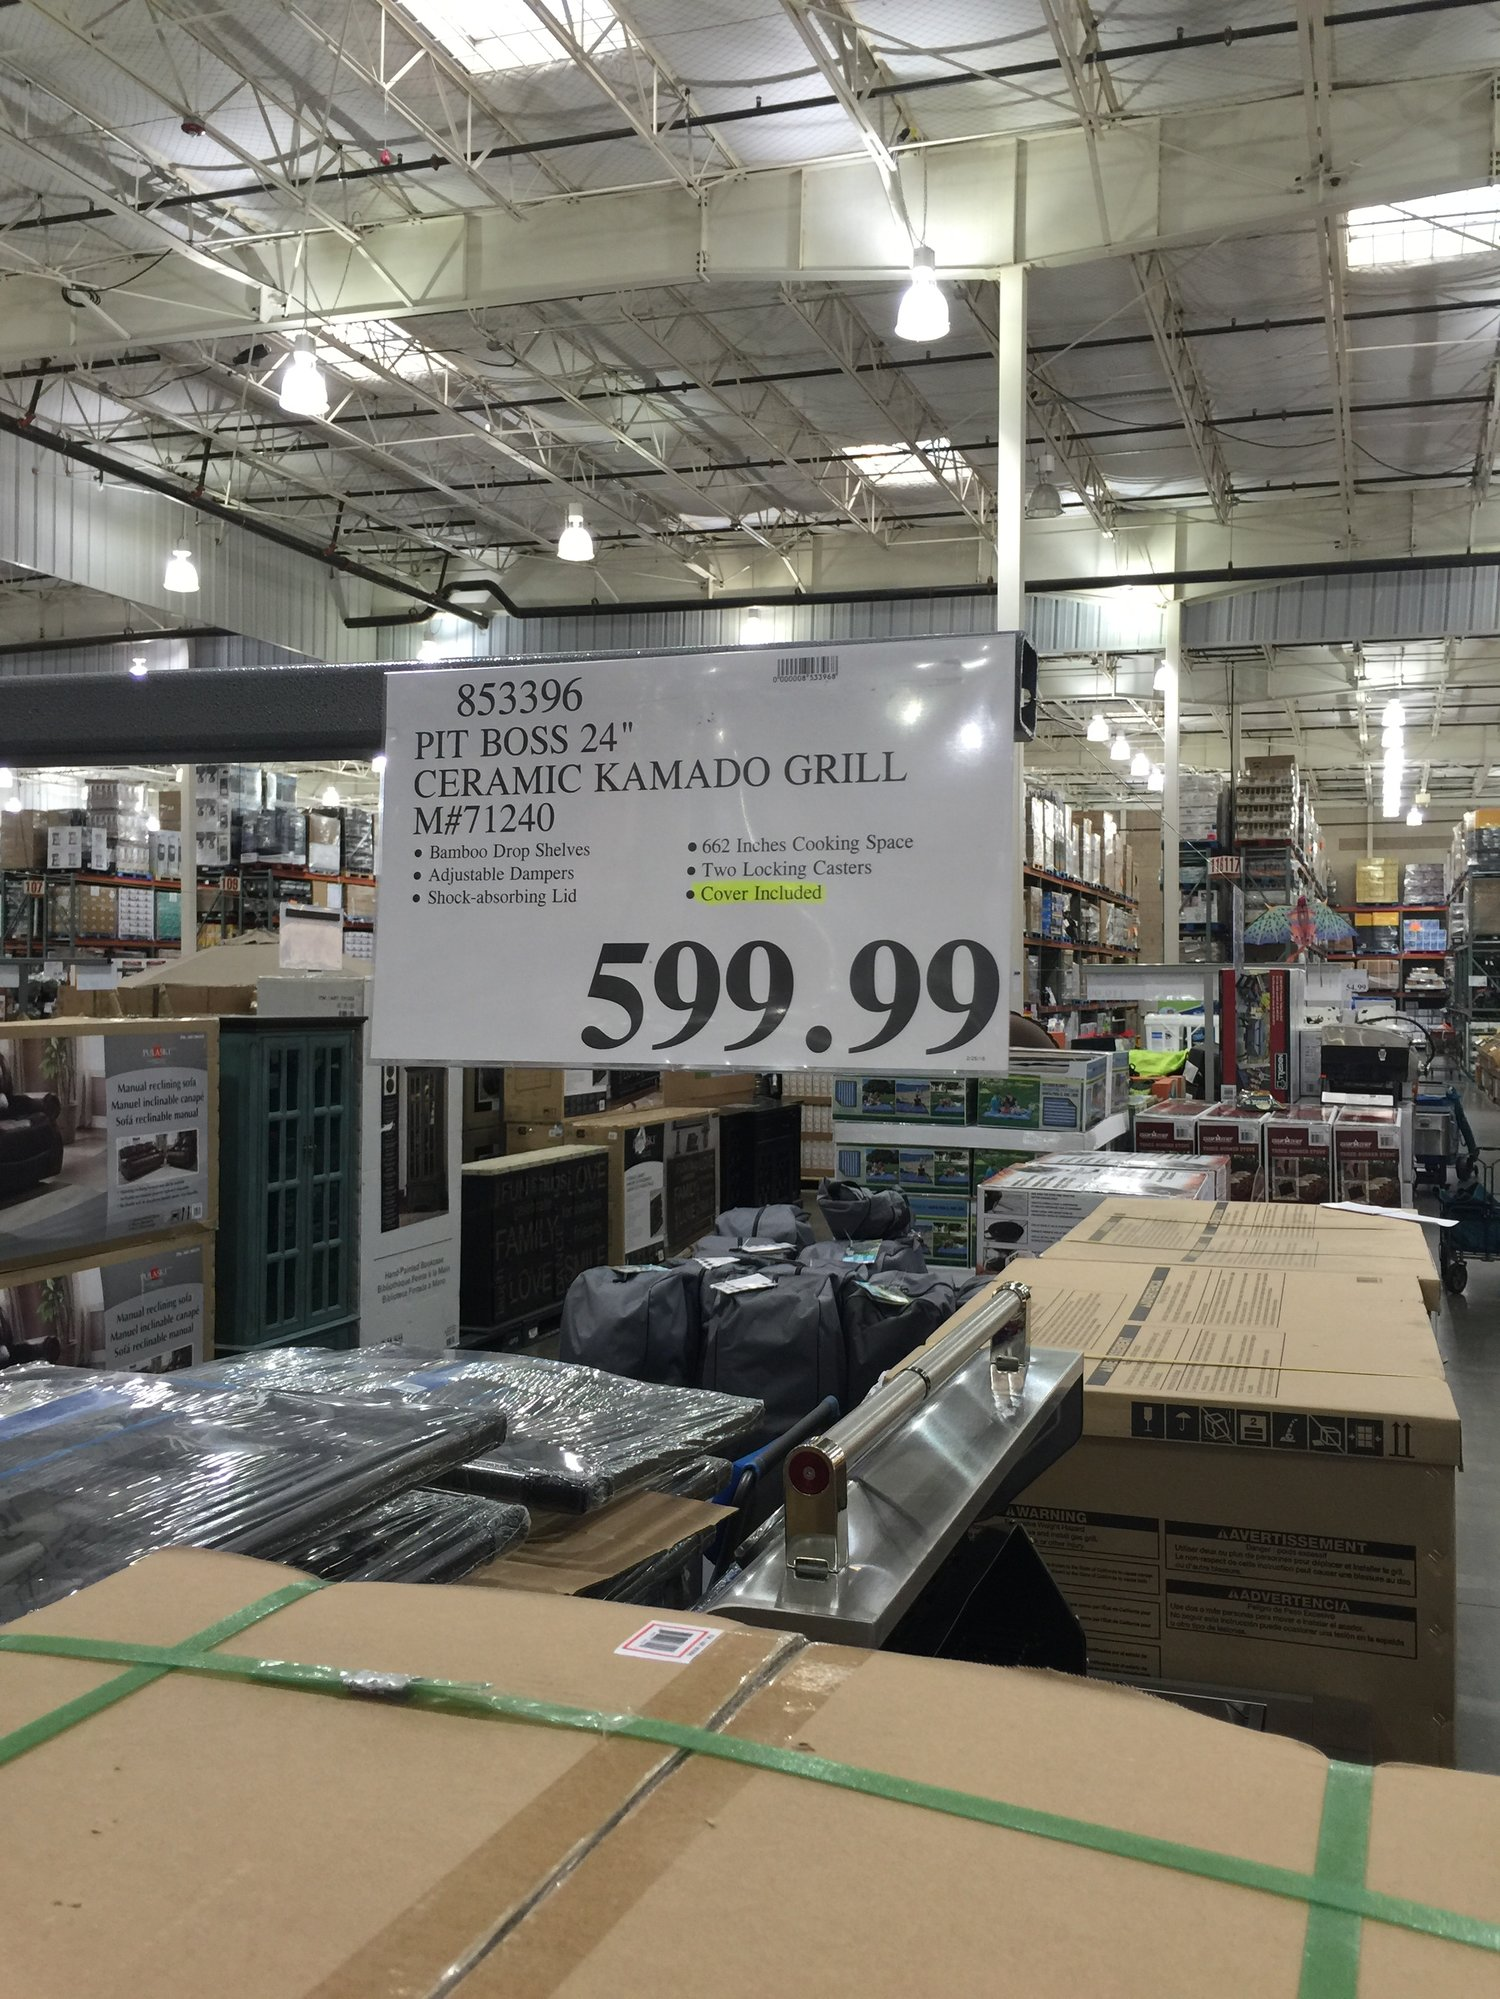 exceptional Costco Kamado Grill Part - 18: image.jpeg 2.3M